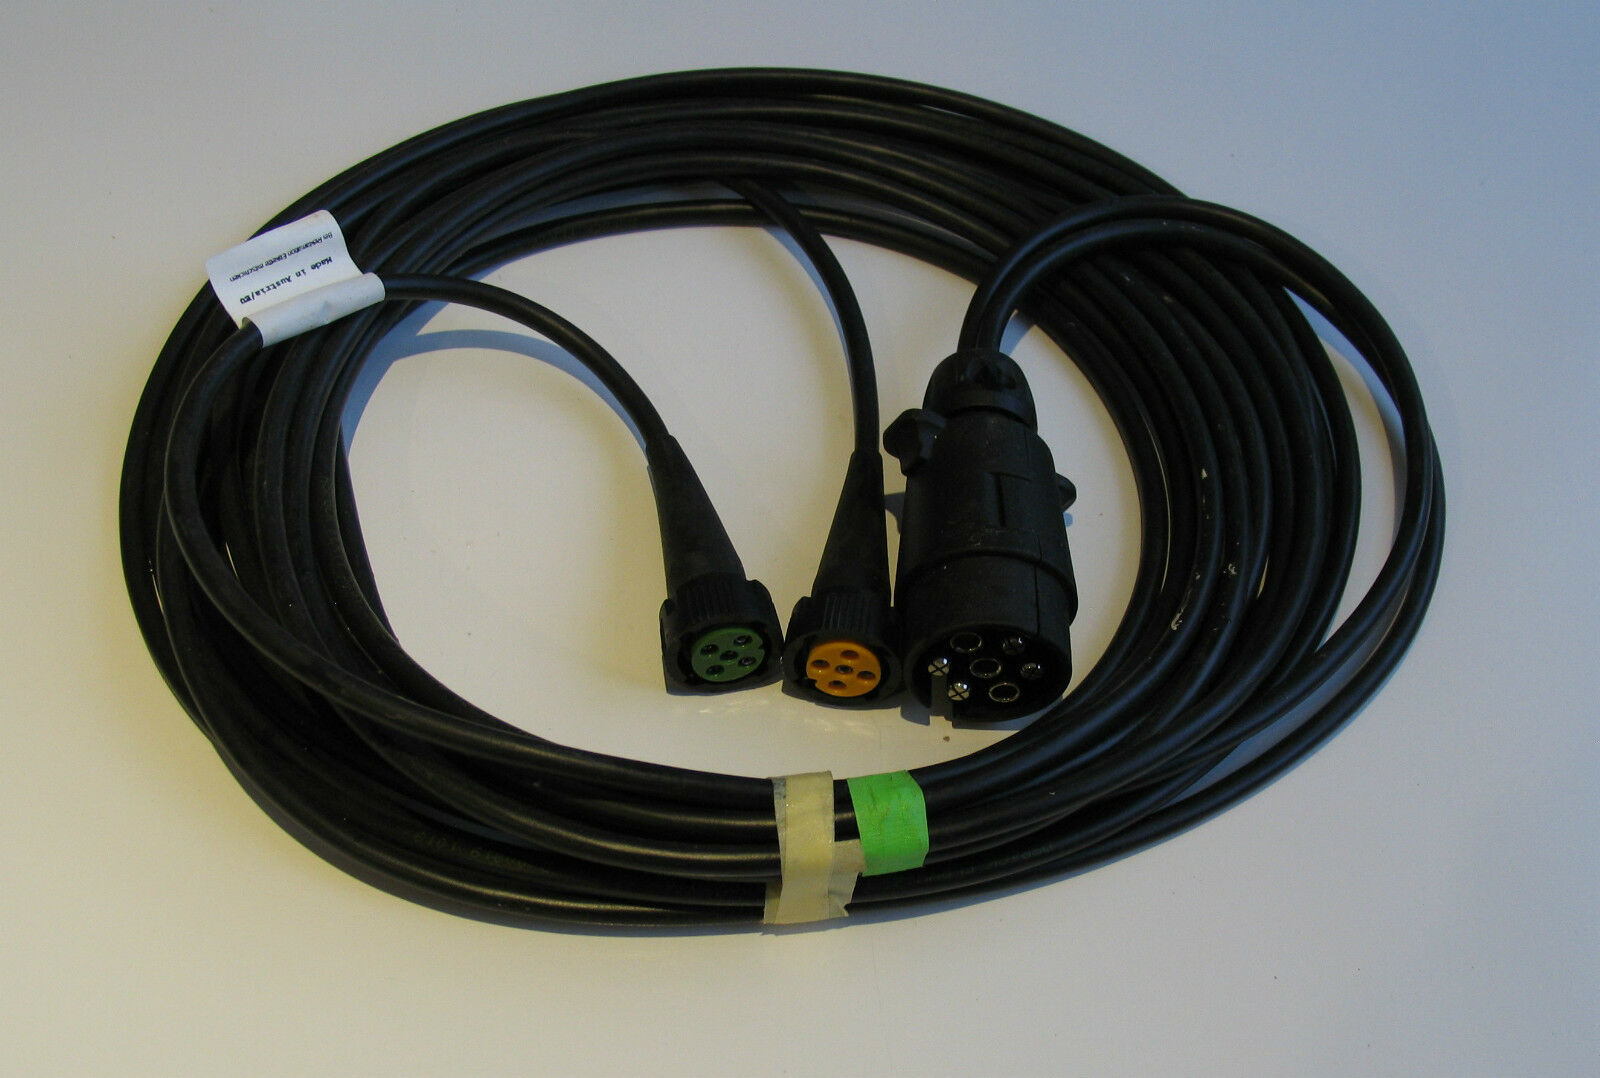 Aspock Light Trailer Wiring Harness Quick Plug In 7 Core Fit Ifor Lights Williams Erde 1 Of 1free Shipping